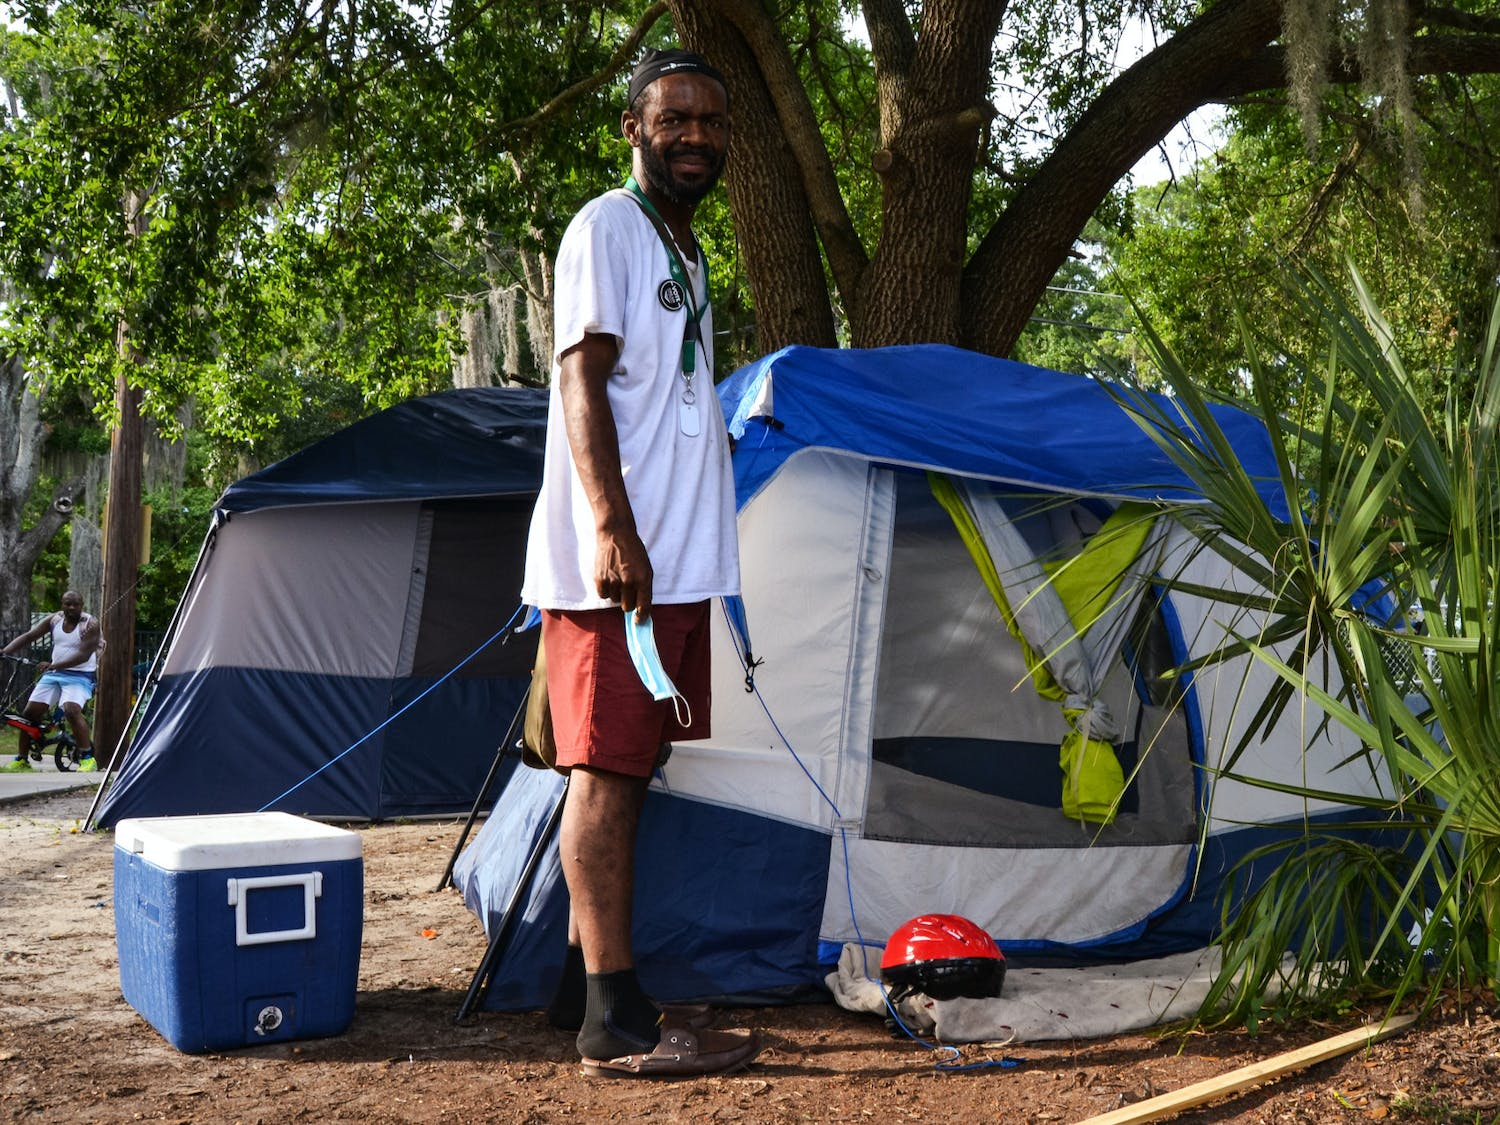 """Robert Thomas, 43, stands in front of his tent behind the old fire station in downtown Gainesville where he says it's """"more peaceful"""" on Thursday, June 10, 2021. Thomas doesn't know what he'll do if the SPARC arts center is built, but says he's willing to fight for the people camped out on the property."""